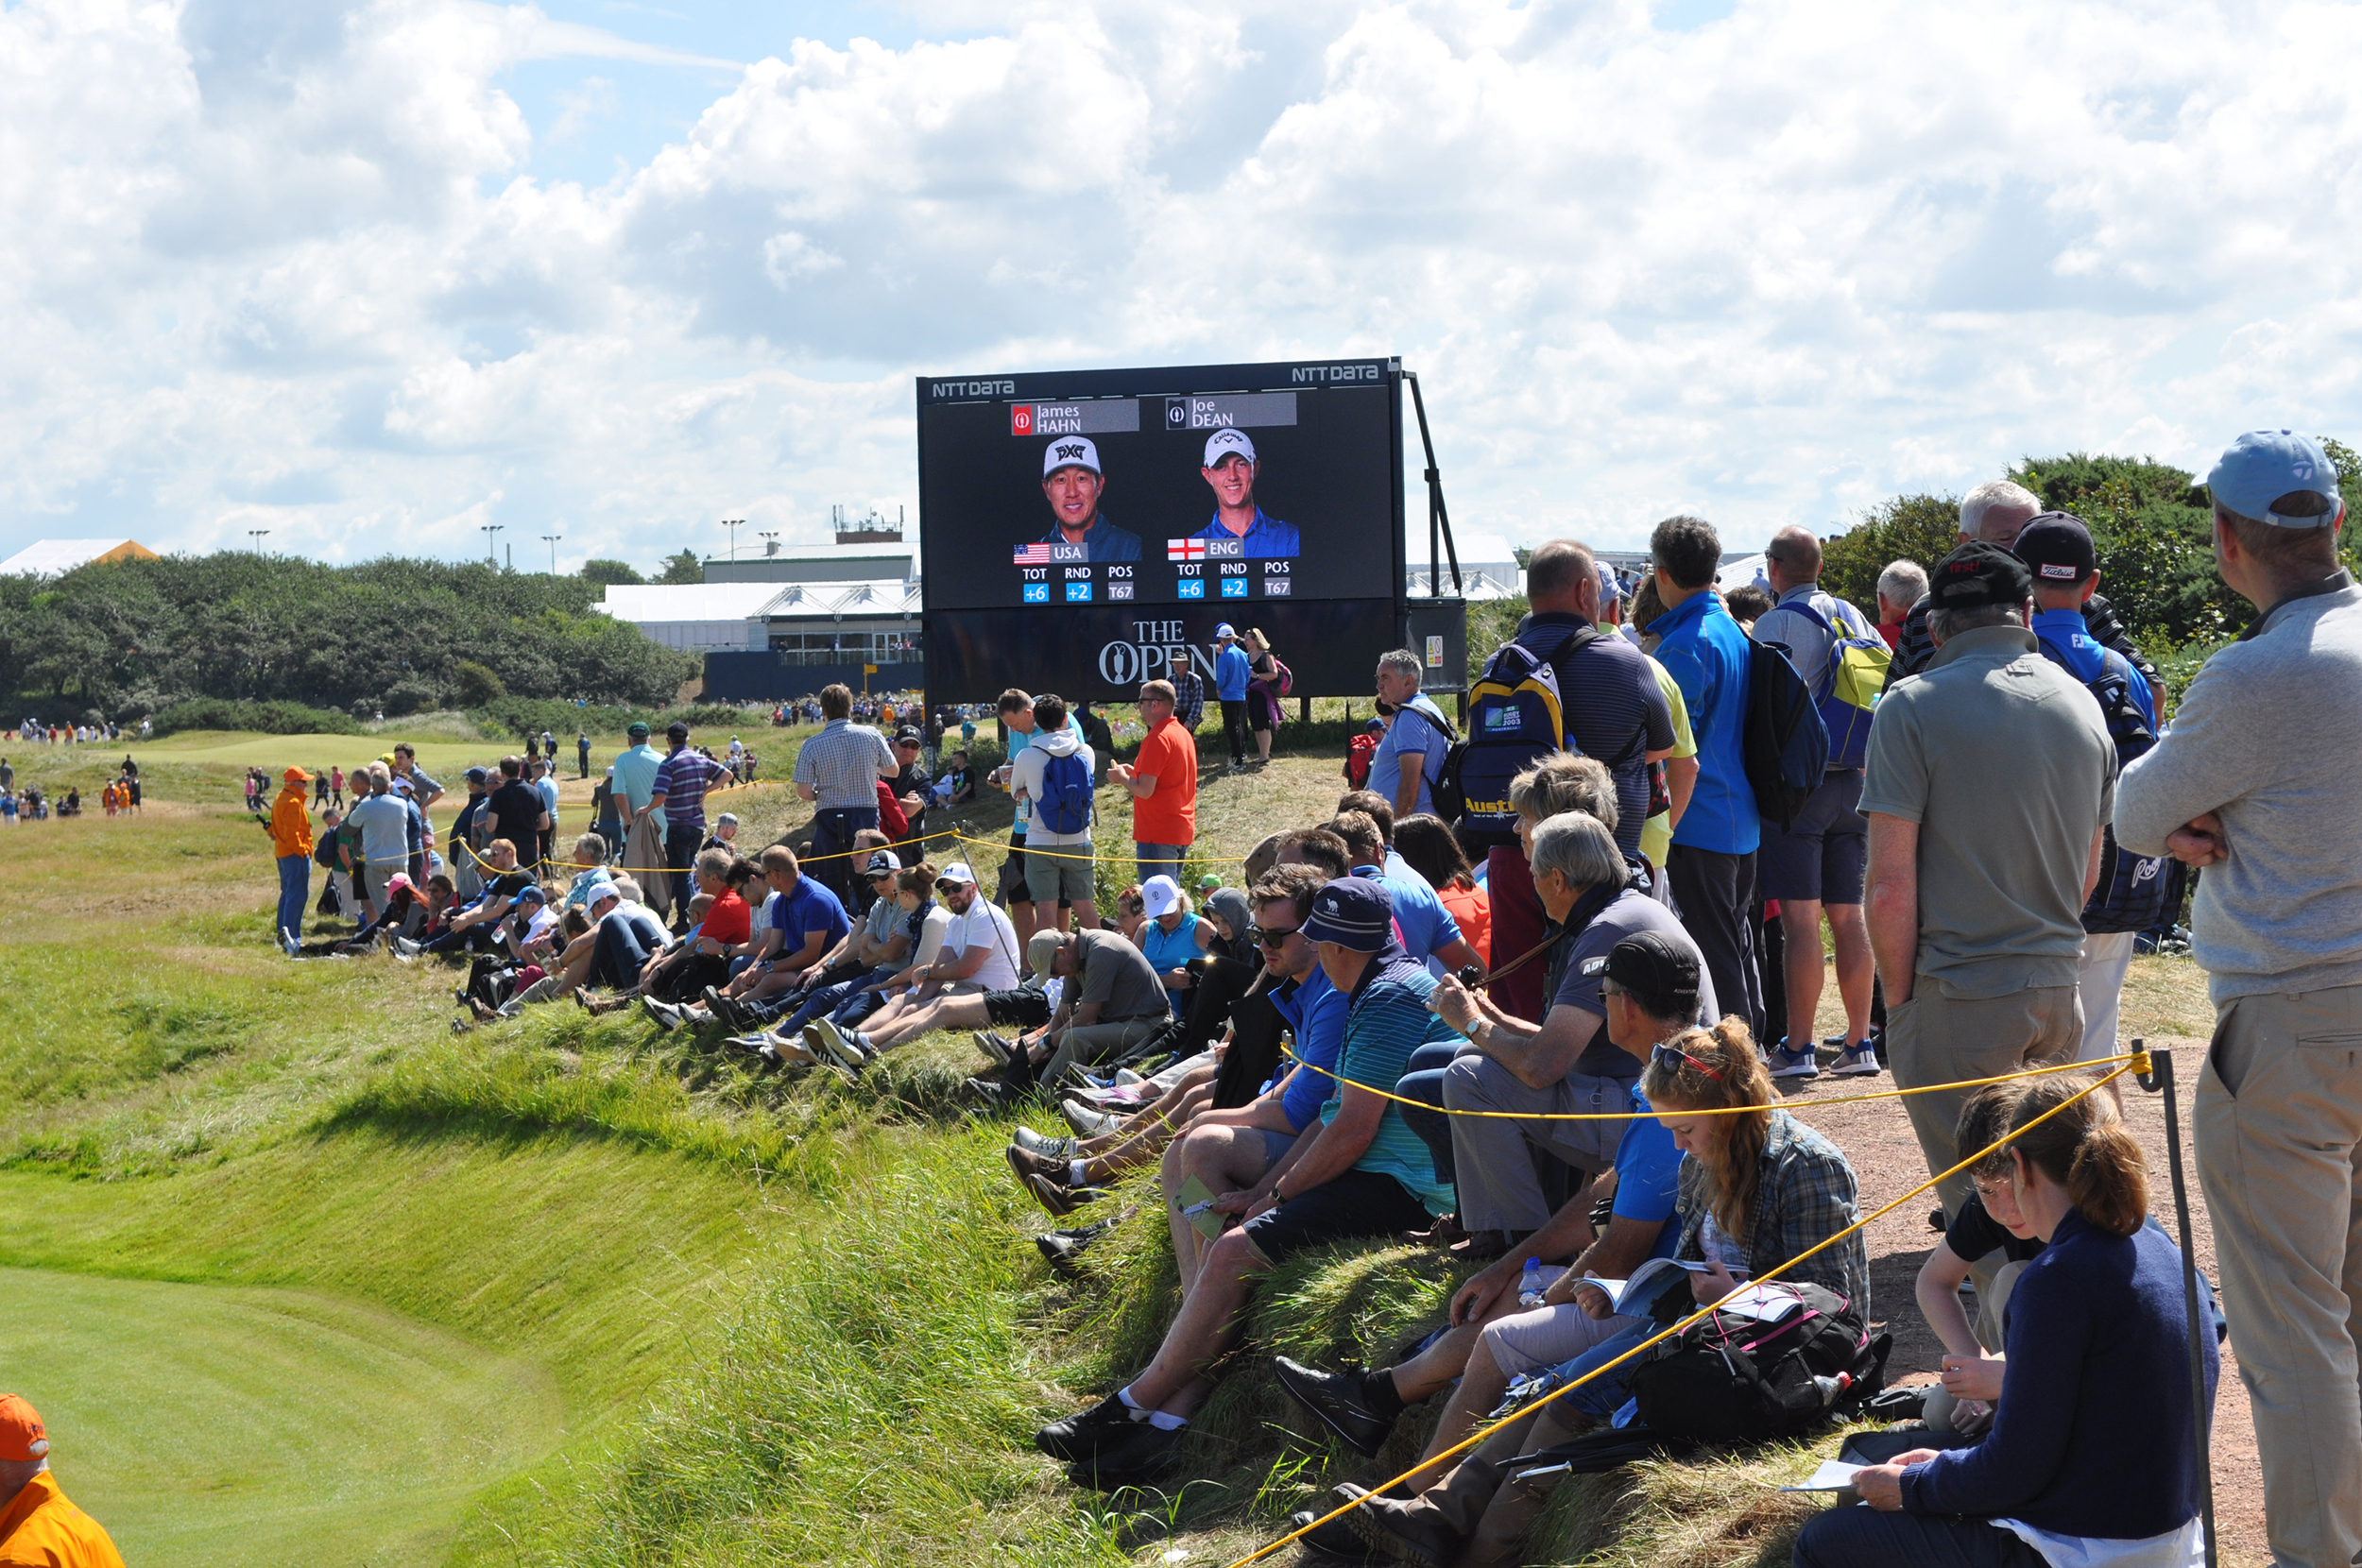 LED boards and graphic displays at The Open